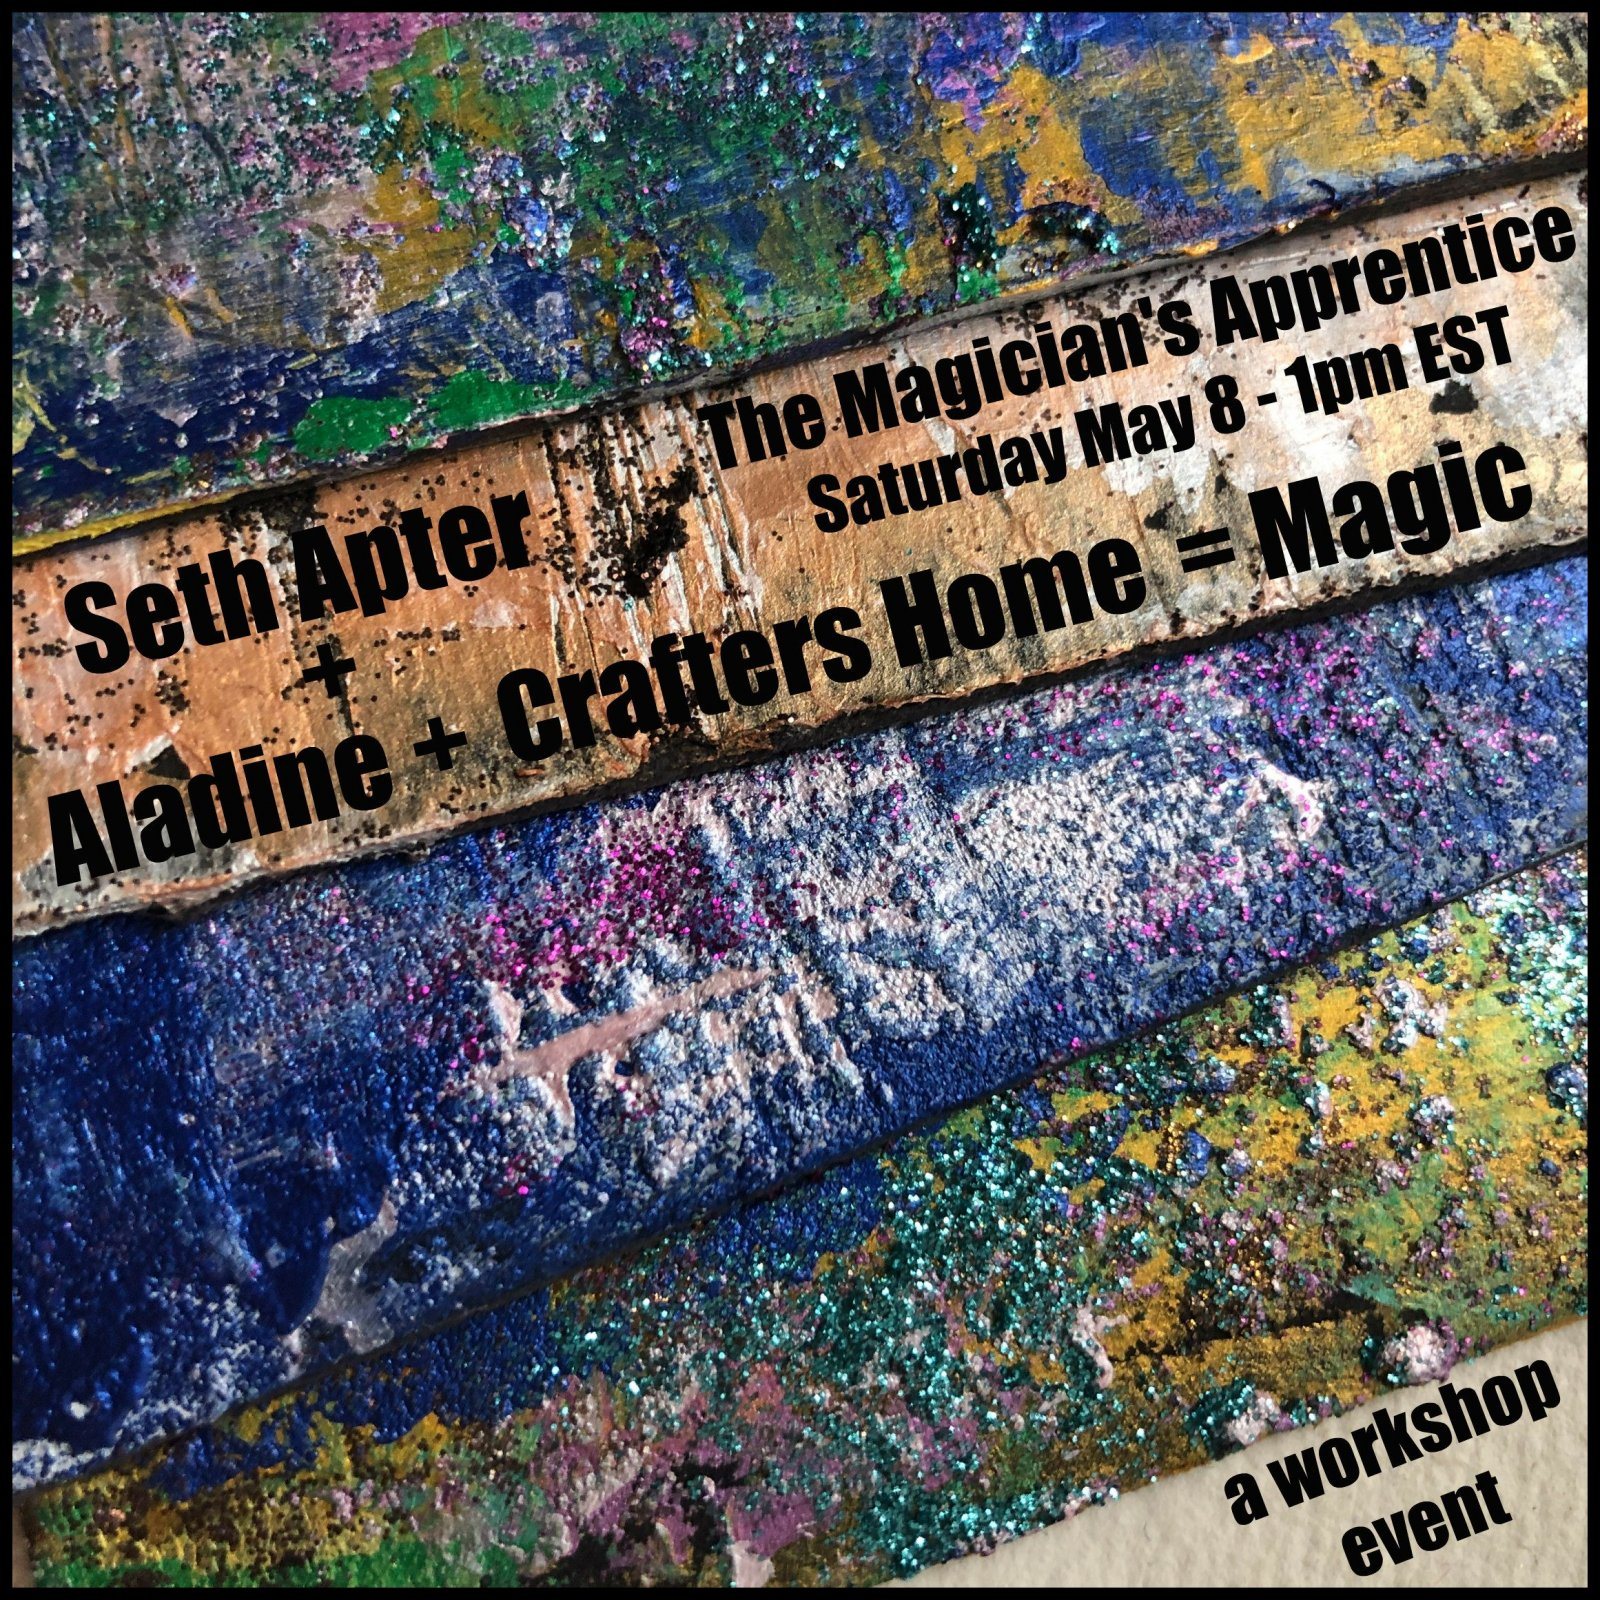 ONLINE CLASS: The Magician's Apprentice with Seth Apter